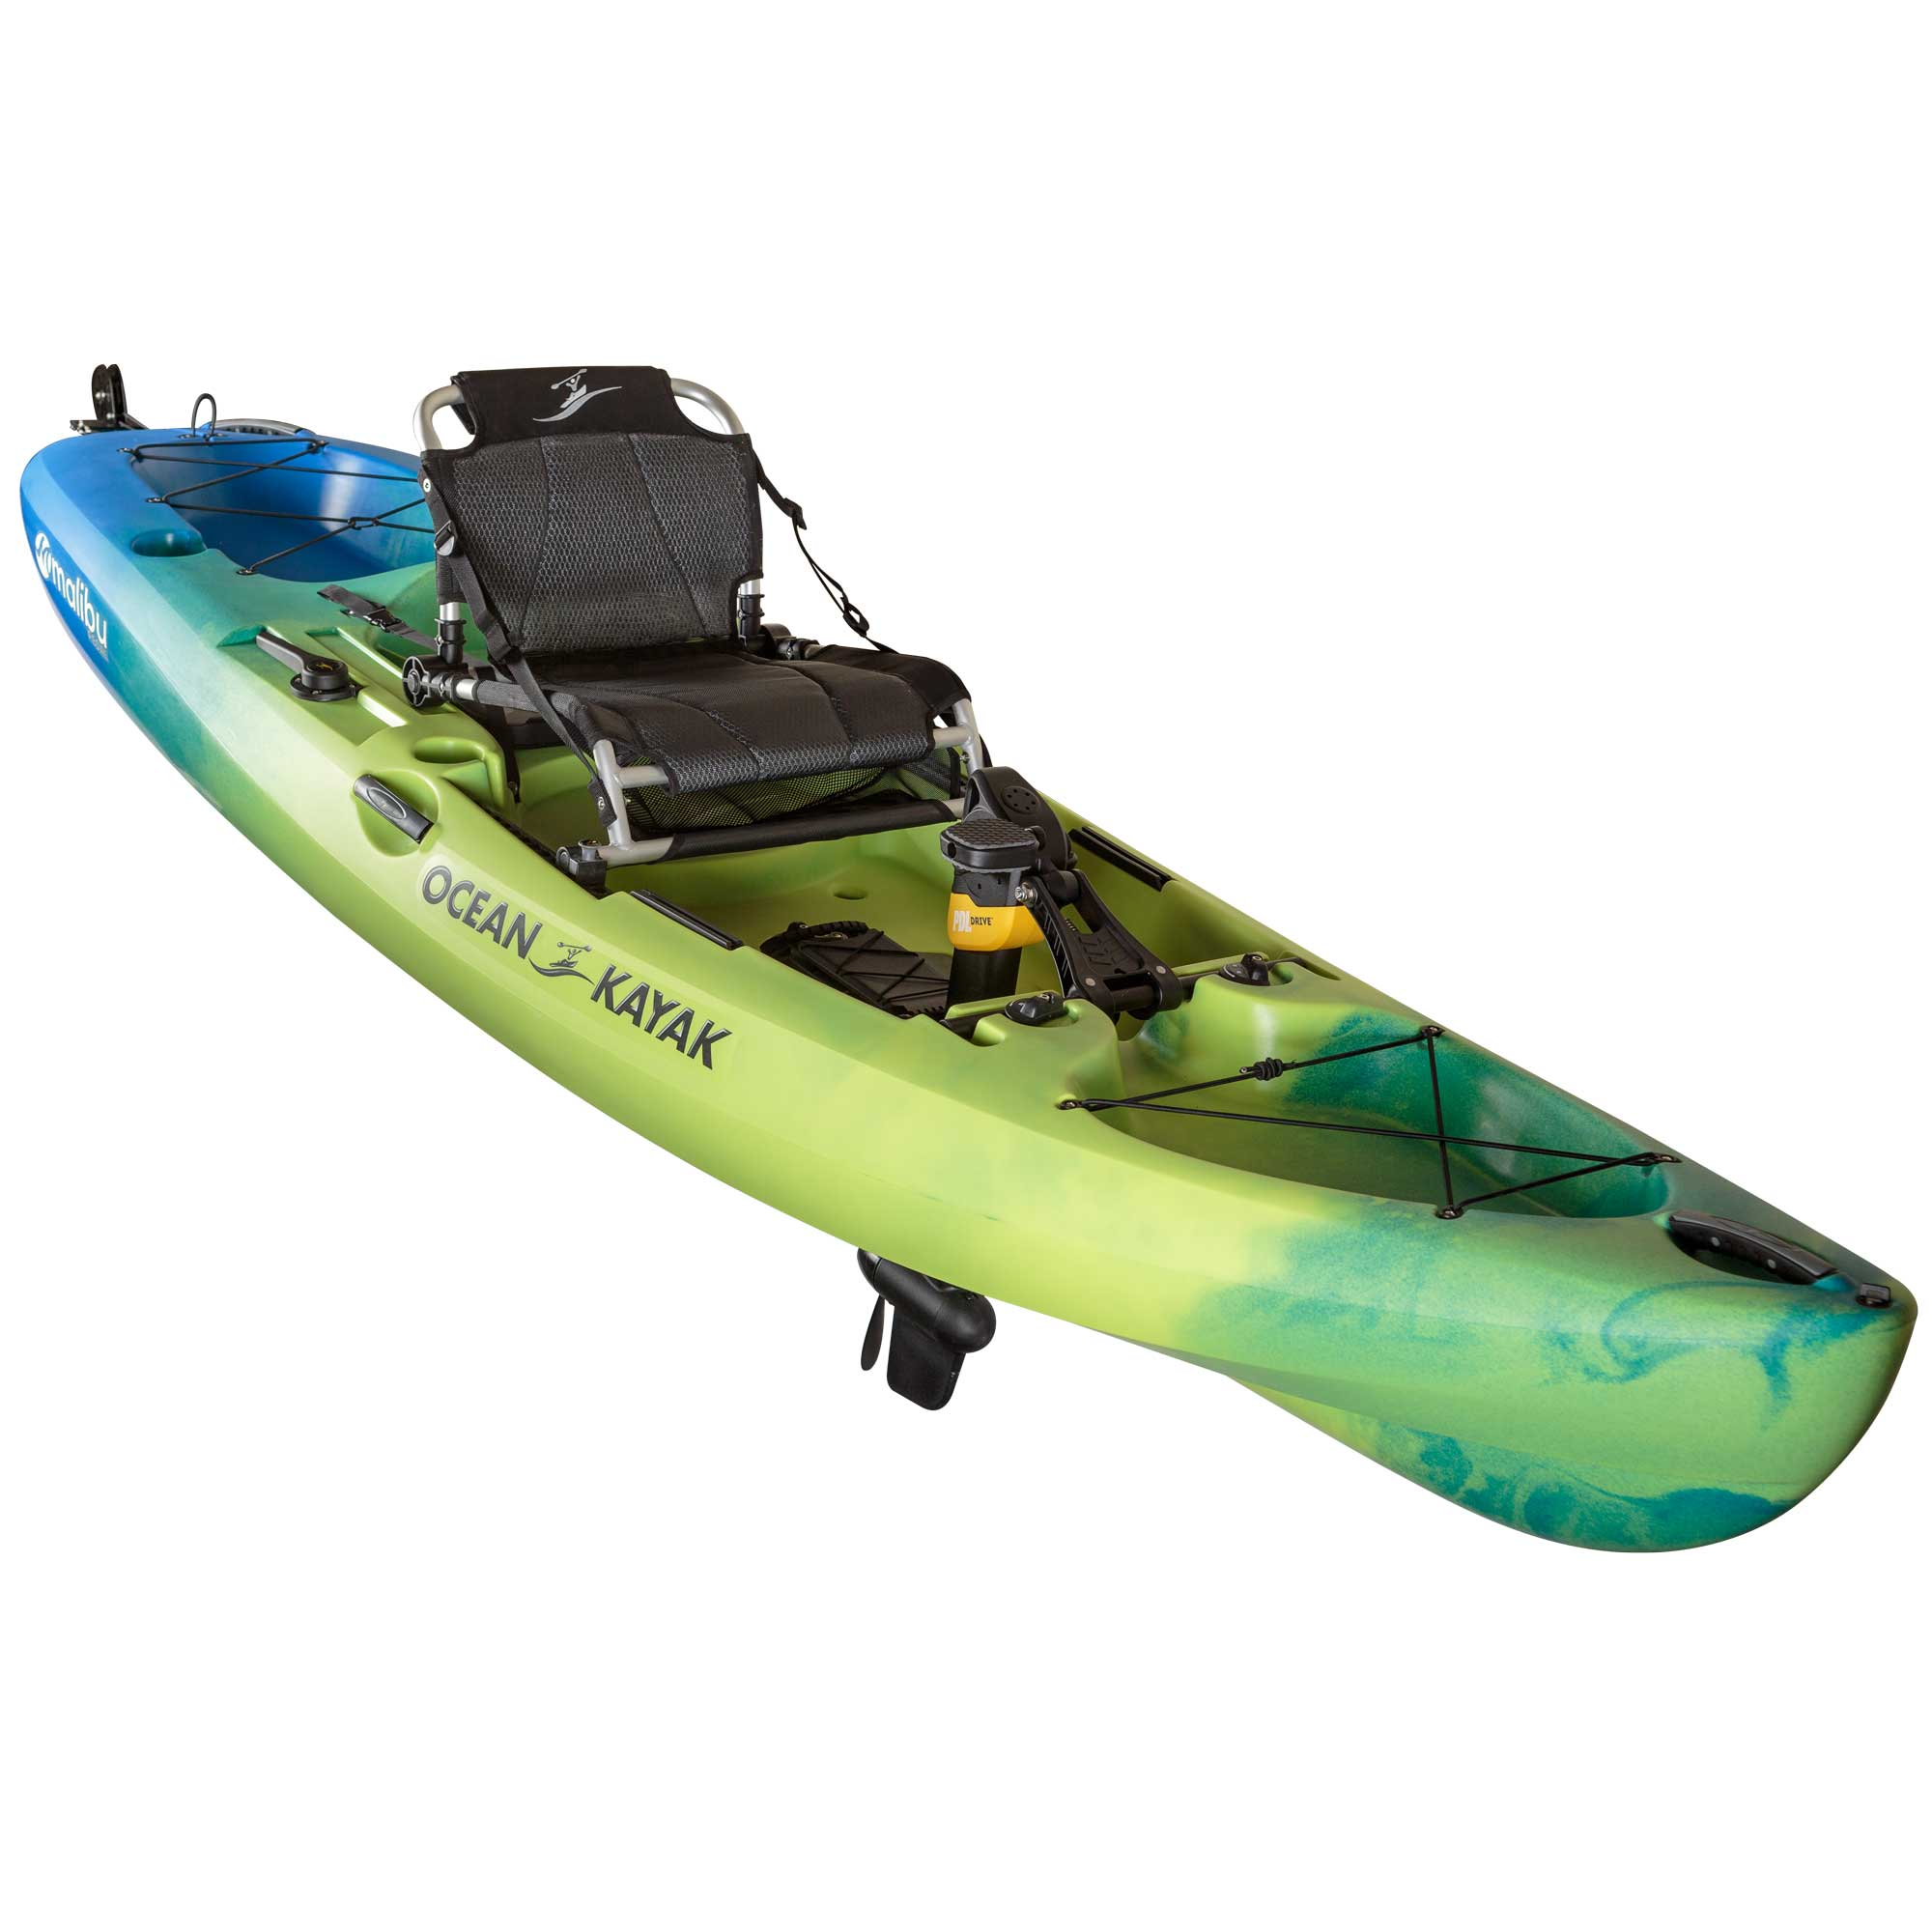 Ocean Kayak Malibu Pedal Kayak reduced from $4219 to $2599! 2 ONLY